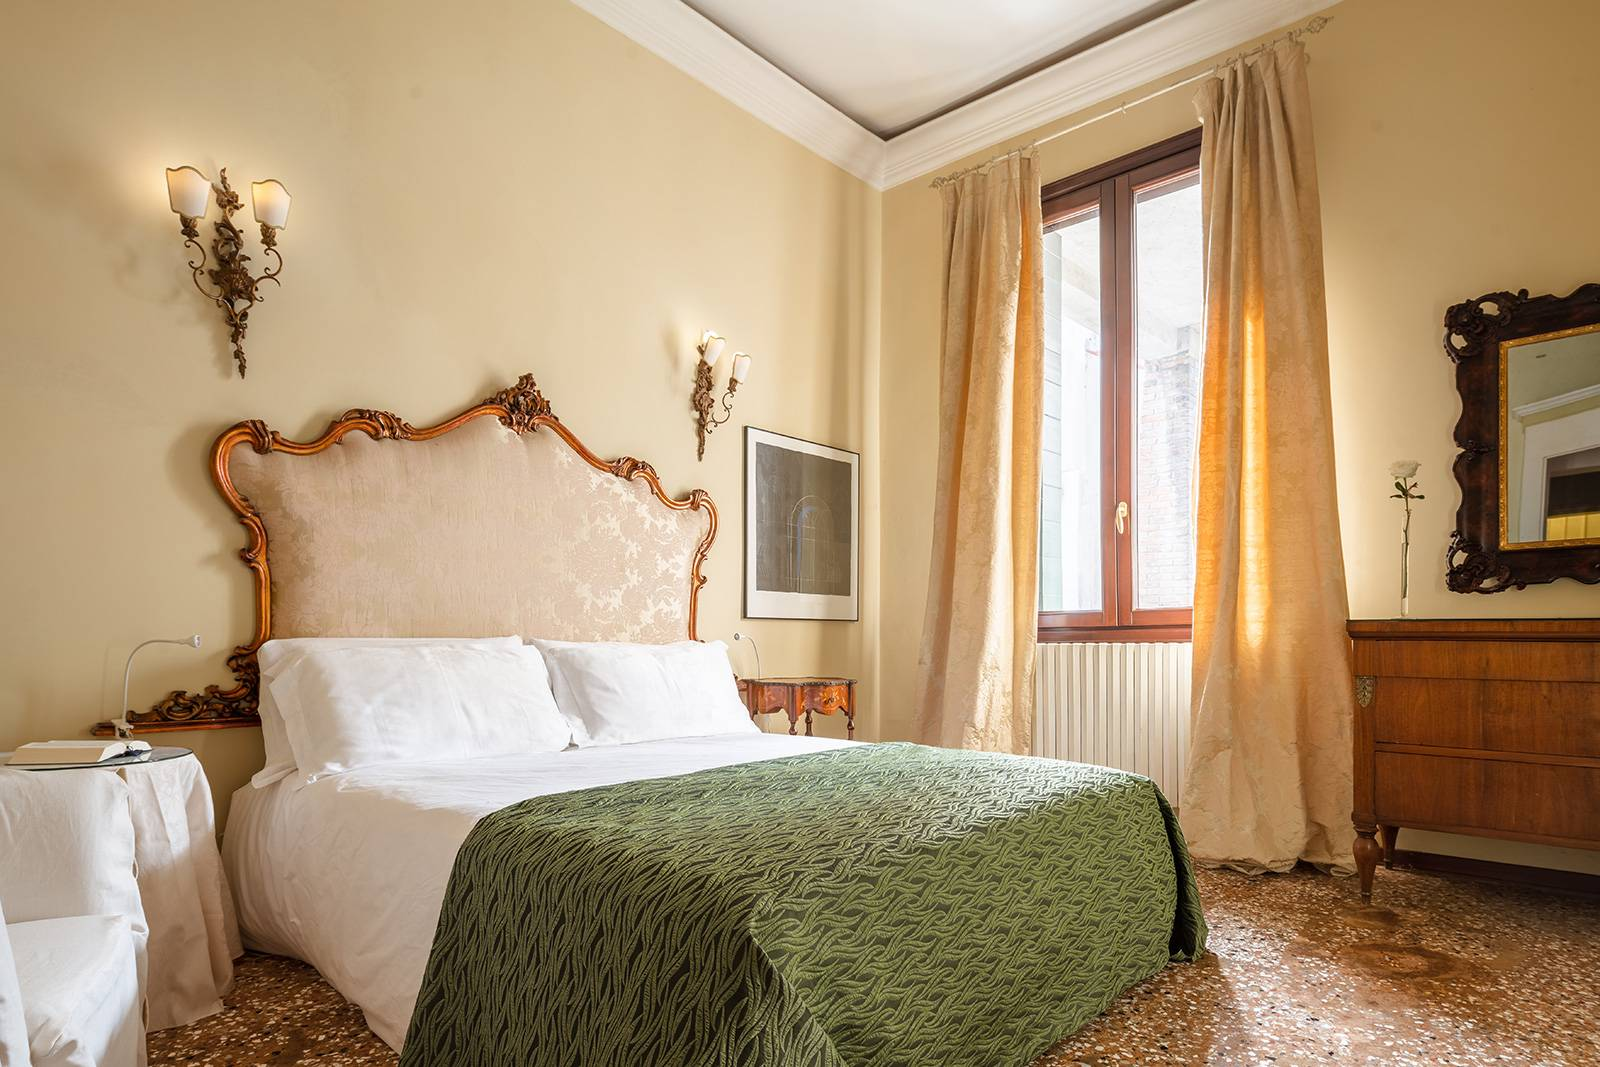 the 2 large bedrooms are furnished with king size mattresses